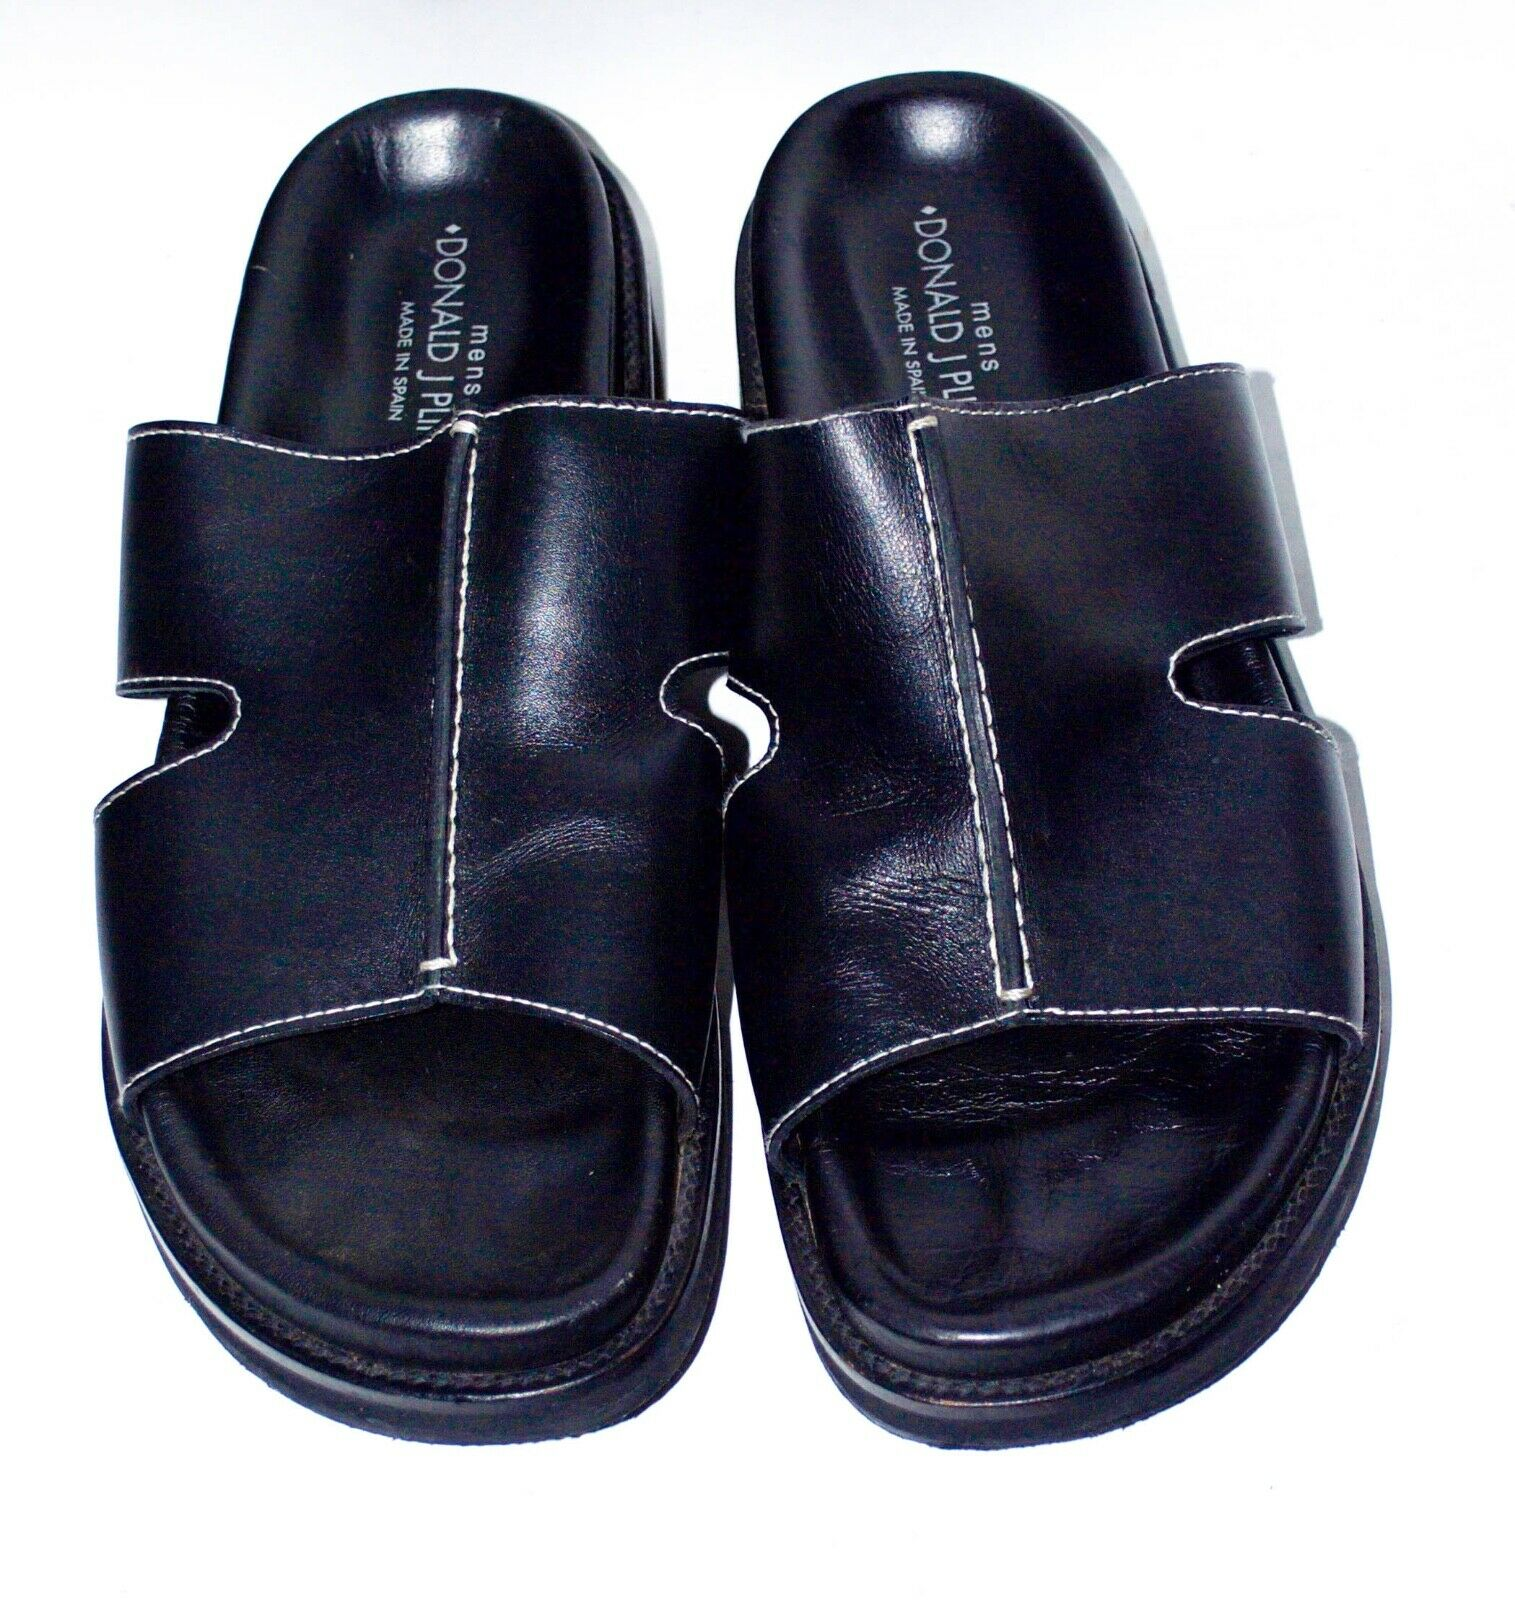 Donald J Pliner Roy Men's Leather Sandals. Size 12 M, Eur 45